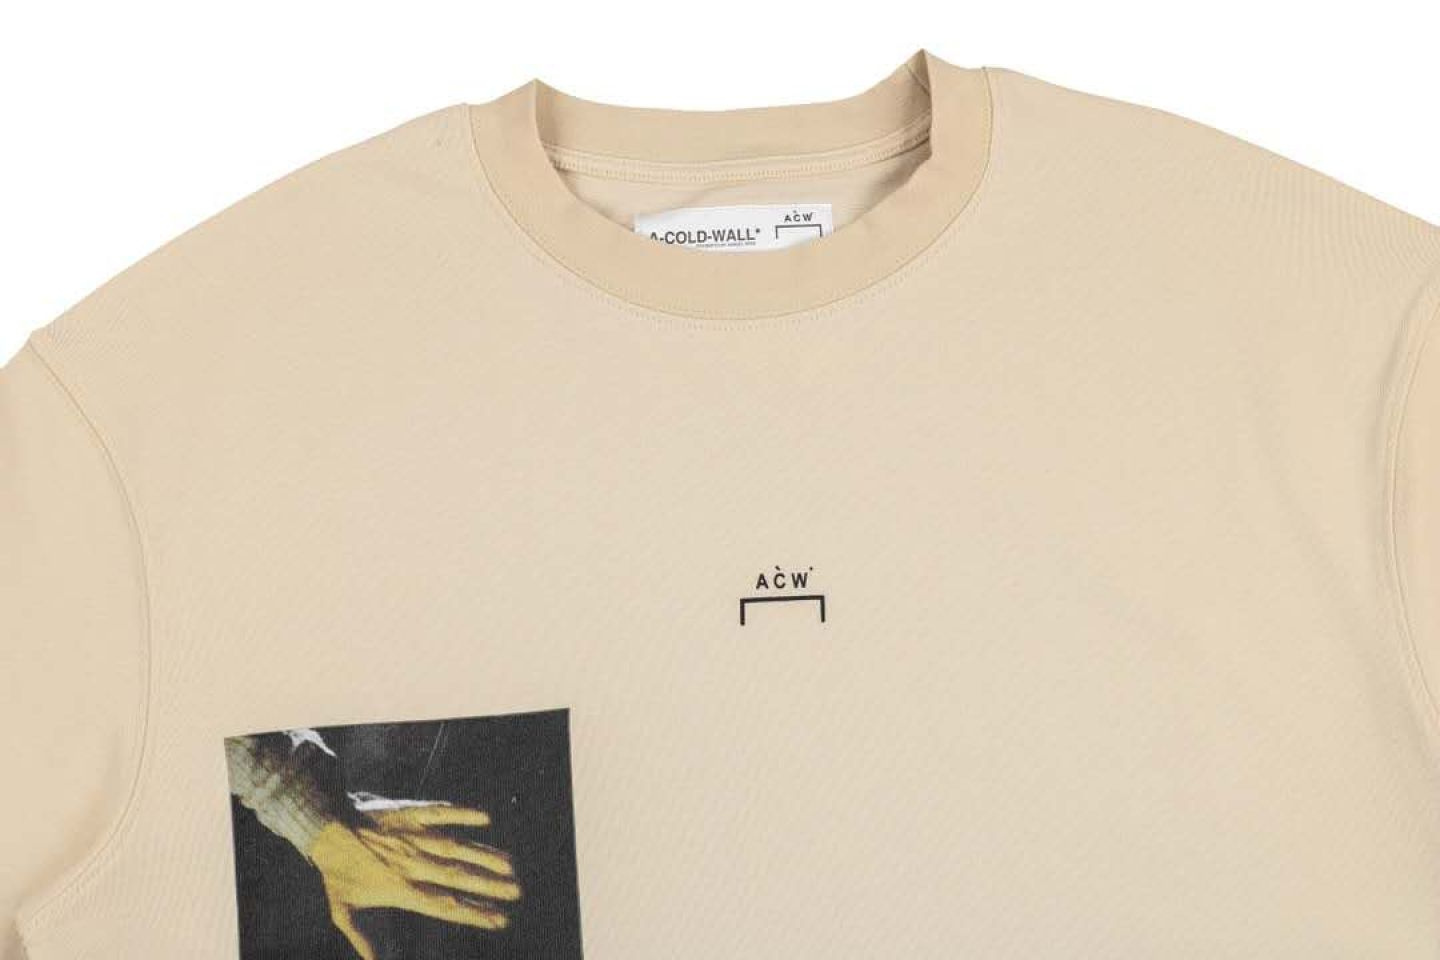 Shirt A-COLD-WALL cold wall oil painting photo short sleeve beige 2 a_cold_wall_cold_wall_oil_painting_photo_short_sleeve_beige__2